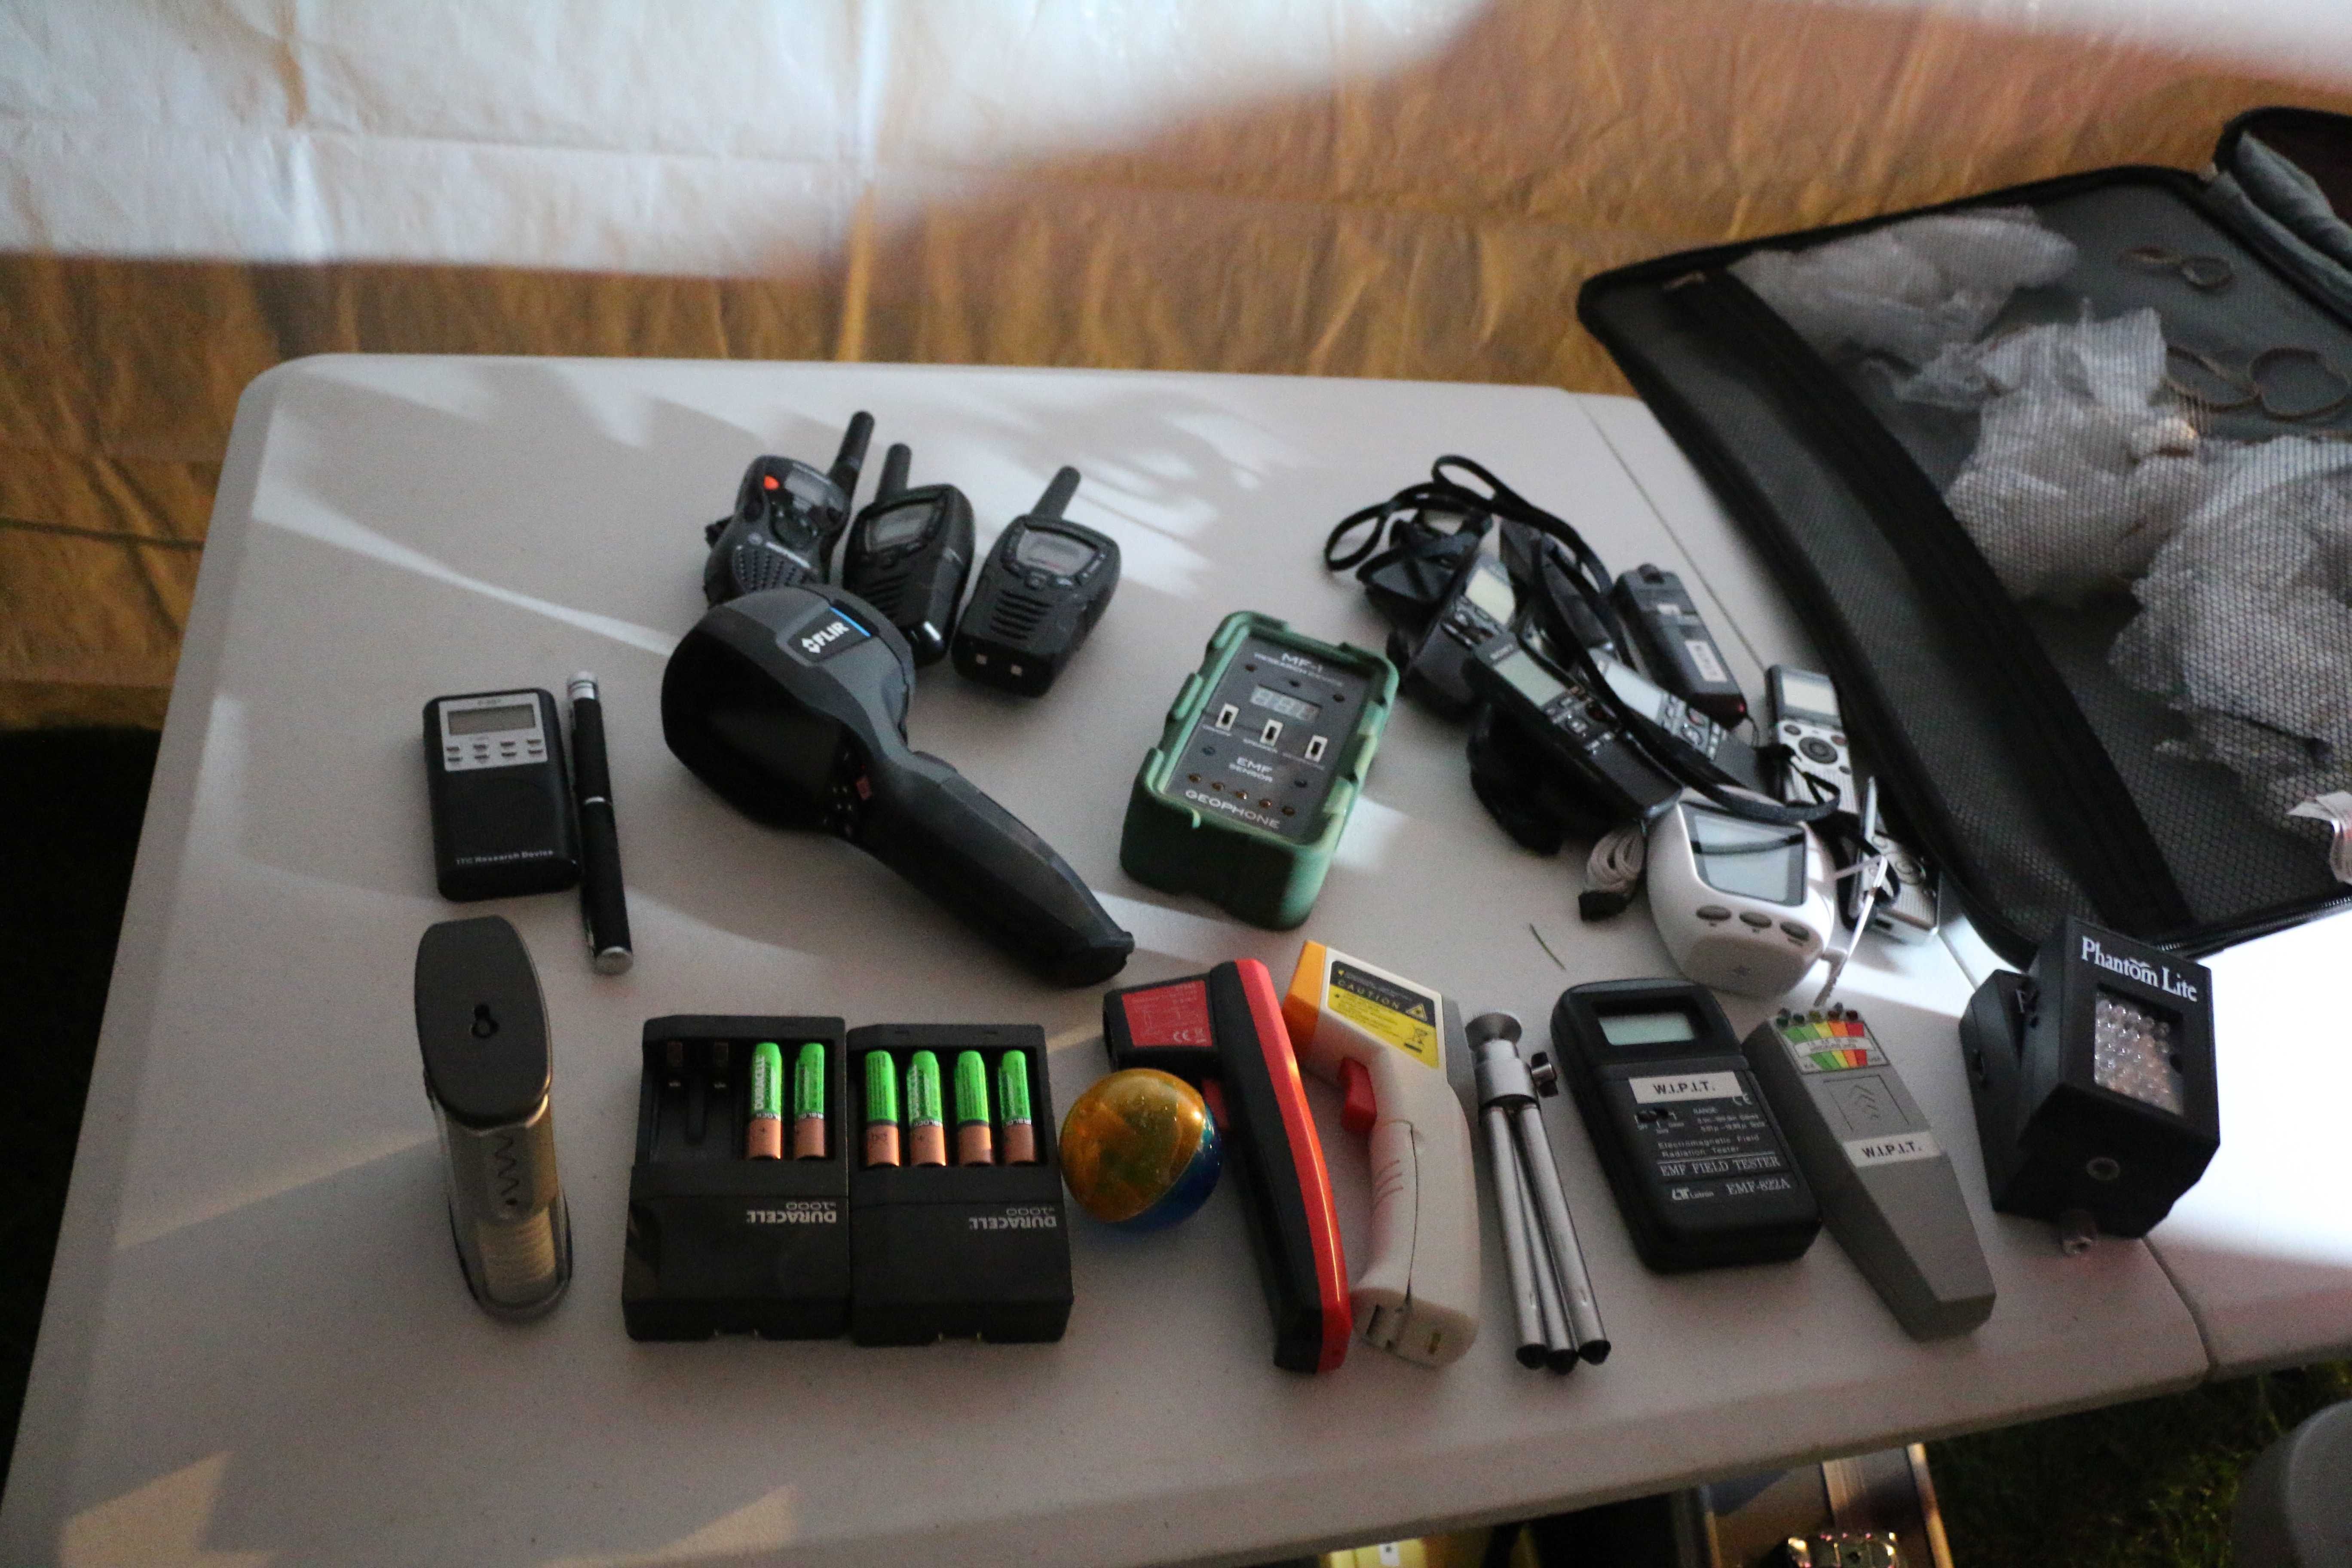 Equipment+used+by+WIPIT+to+track+paranormal+activity.+Photo+by+Amber+Levehagne